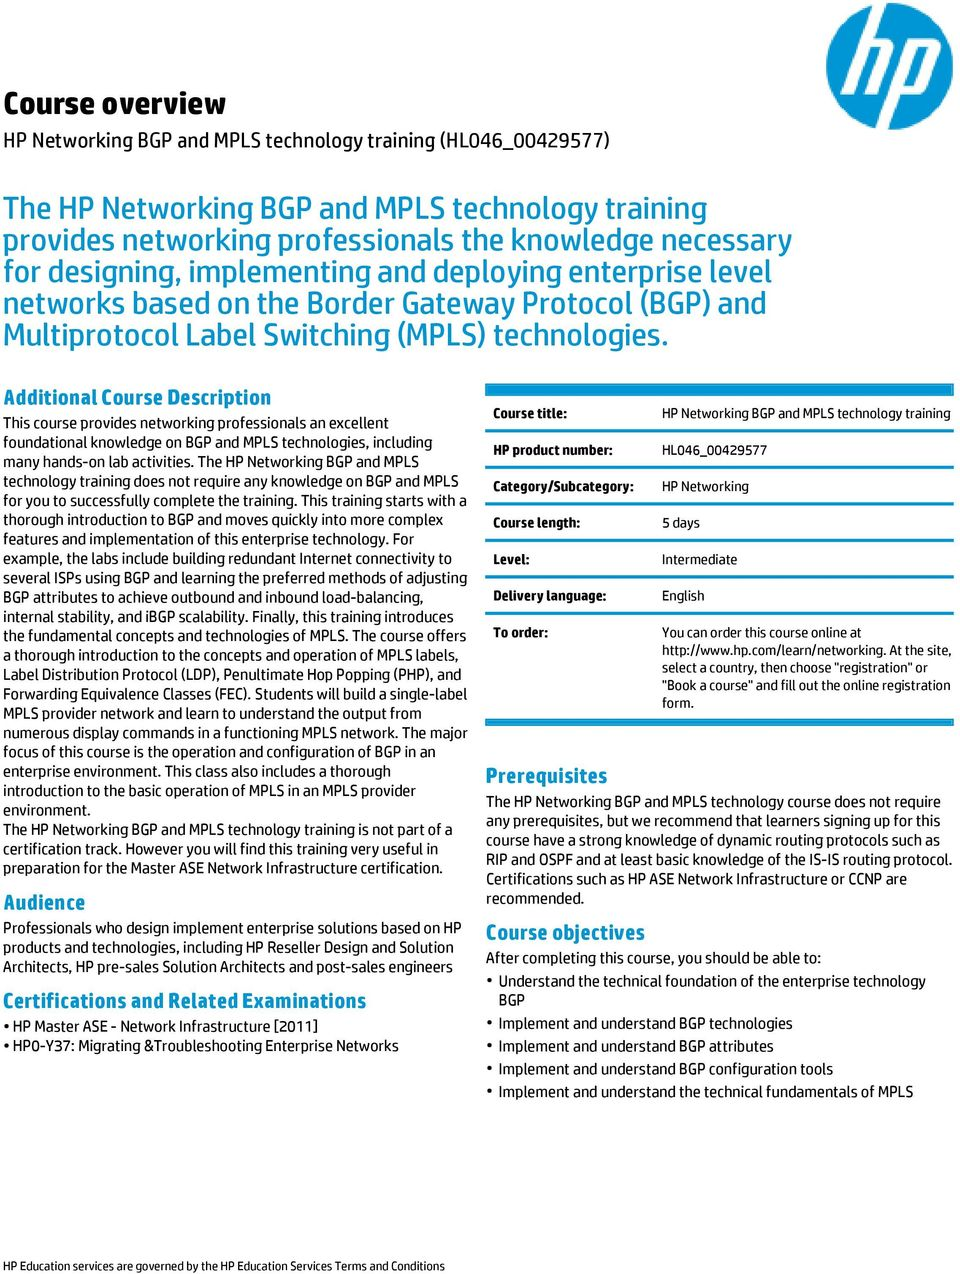 HP Networking BGP and MPLS technology training - PDF